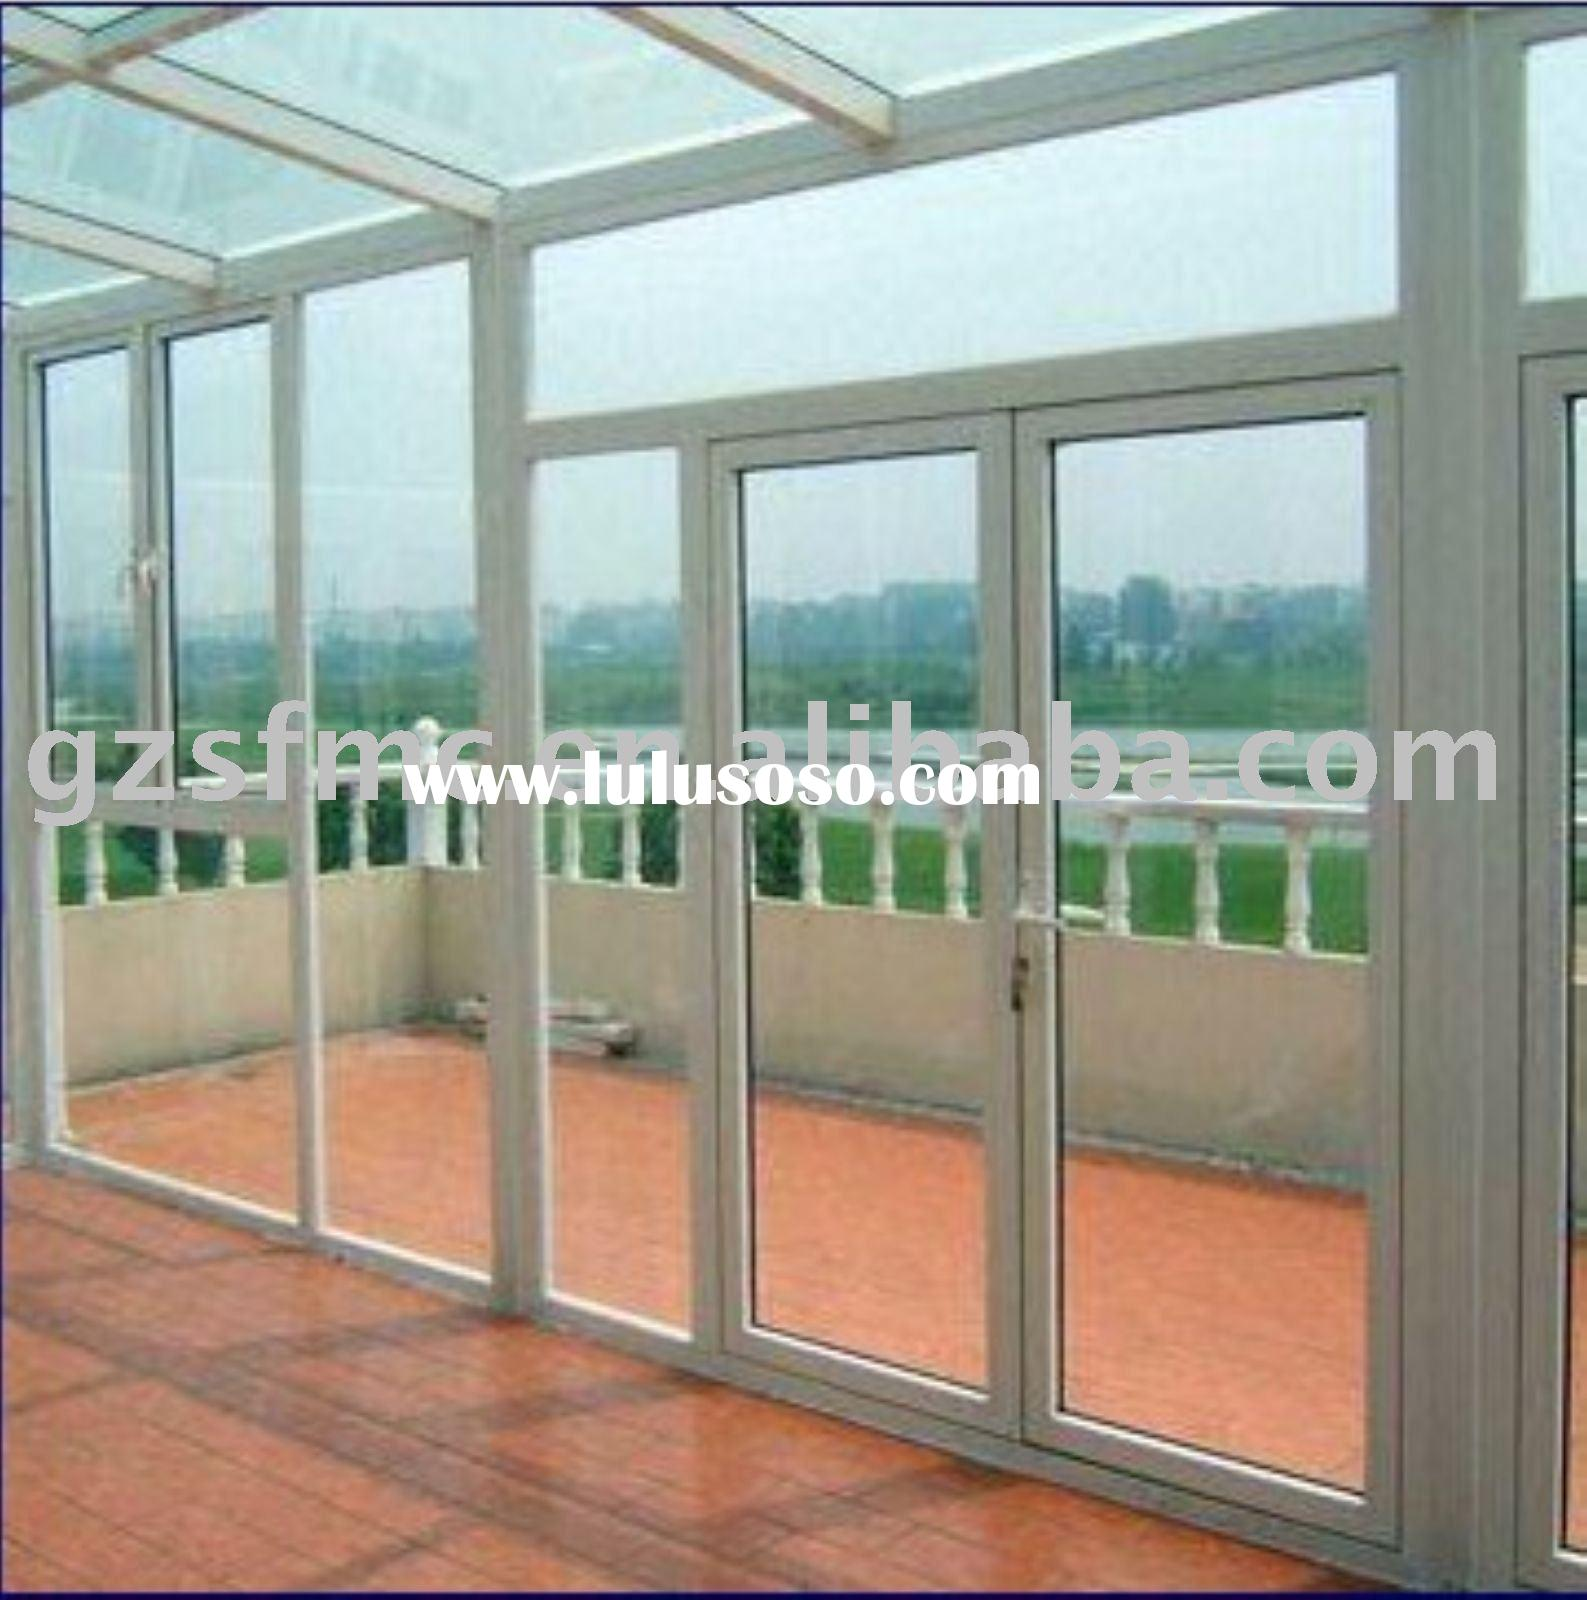 Sun house of pvc windows&doors.